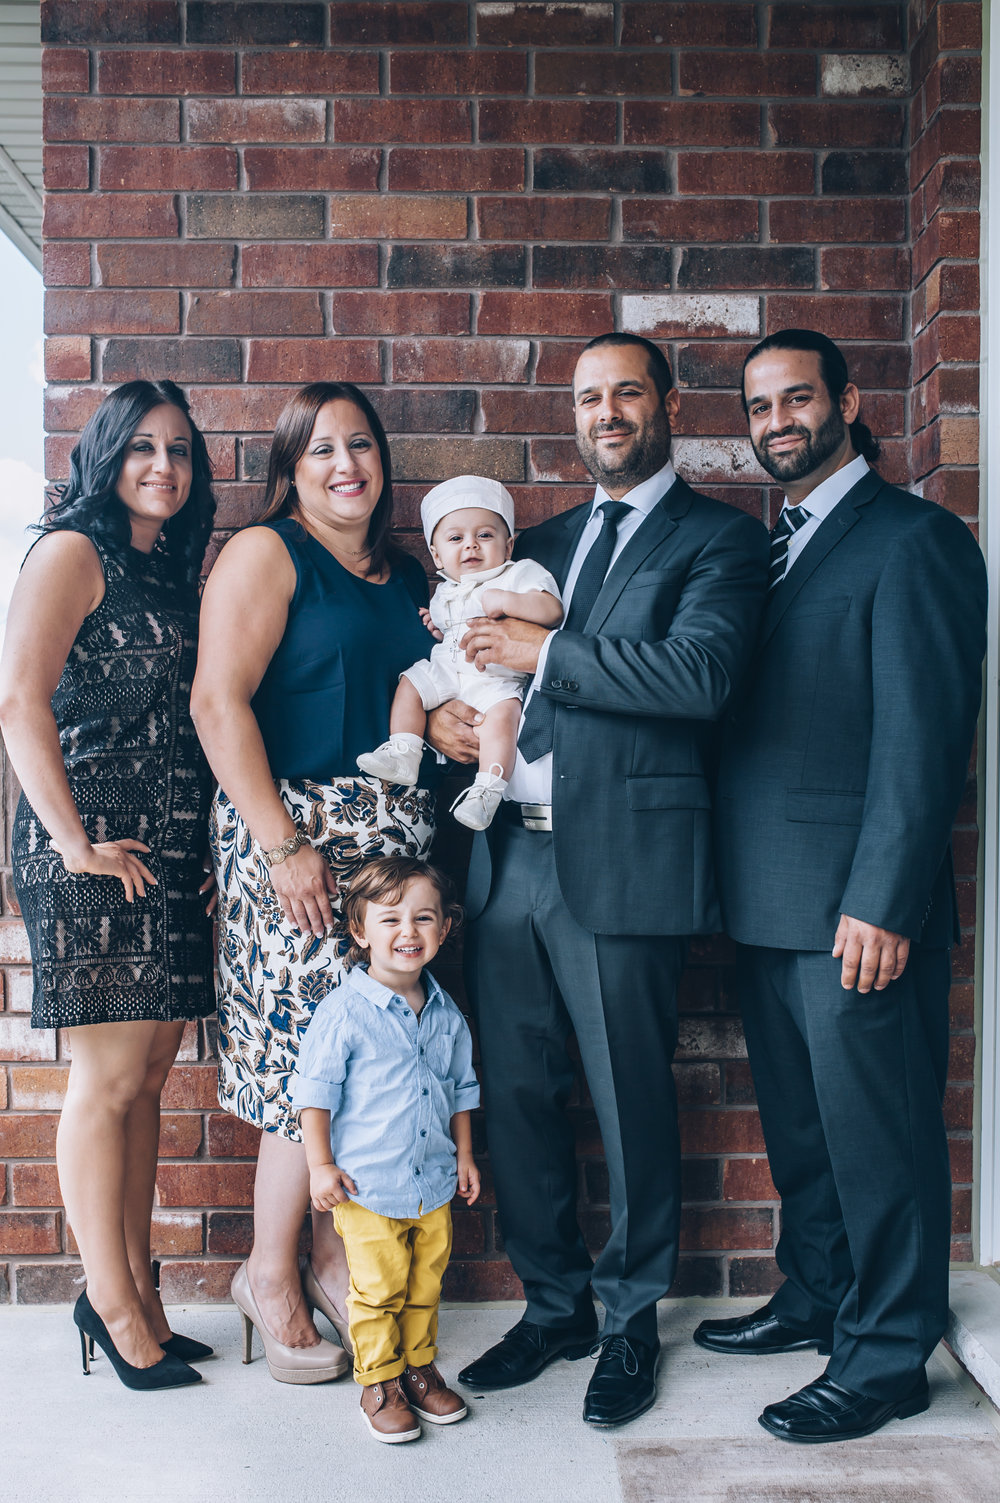 event photography, family, Burlington family photographer, family photographer, family, baptisim, family session